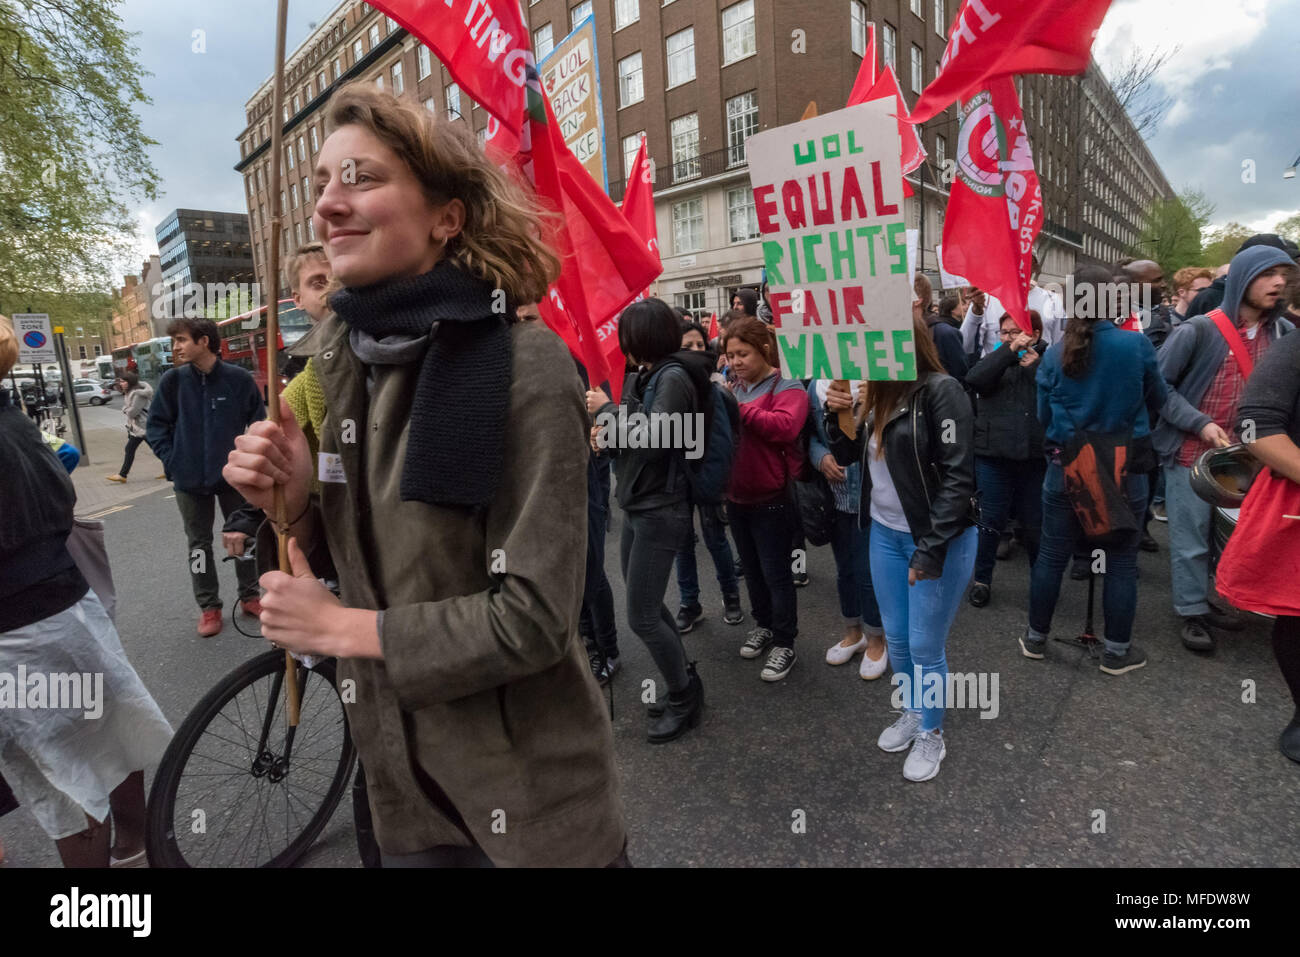 London, UK. 25th April 2018. People march around Russell Square from the rally  by workers, students and other trade unionists supporting over 100 cleaners, porters, security officers, receptionists, gardeners, post room staff and audiovisual staff in the Independent Workers Union of Great Britain - IWGB at the end of the first day of a two day strike at the University of London central administration. The workers, employed by various outsourcing companies are demanding to be directly employed by the University, and receive the same conditions and benefits as directly employed colleagues; outs - Stock Image